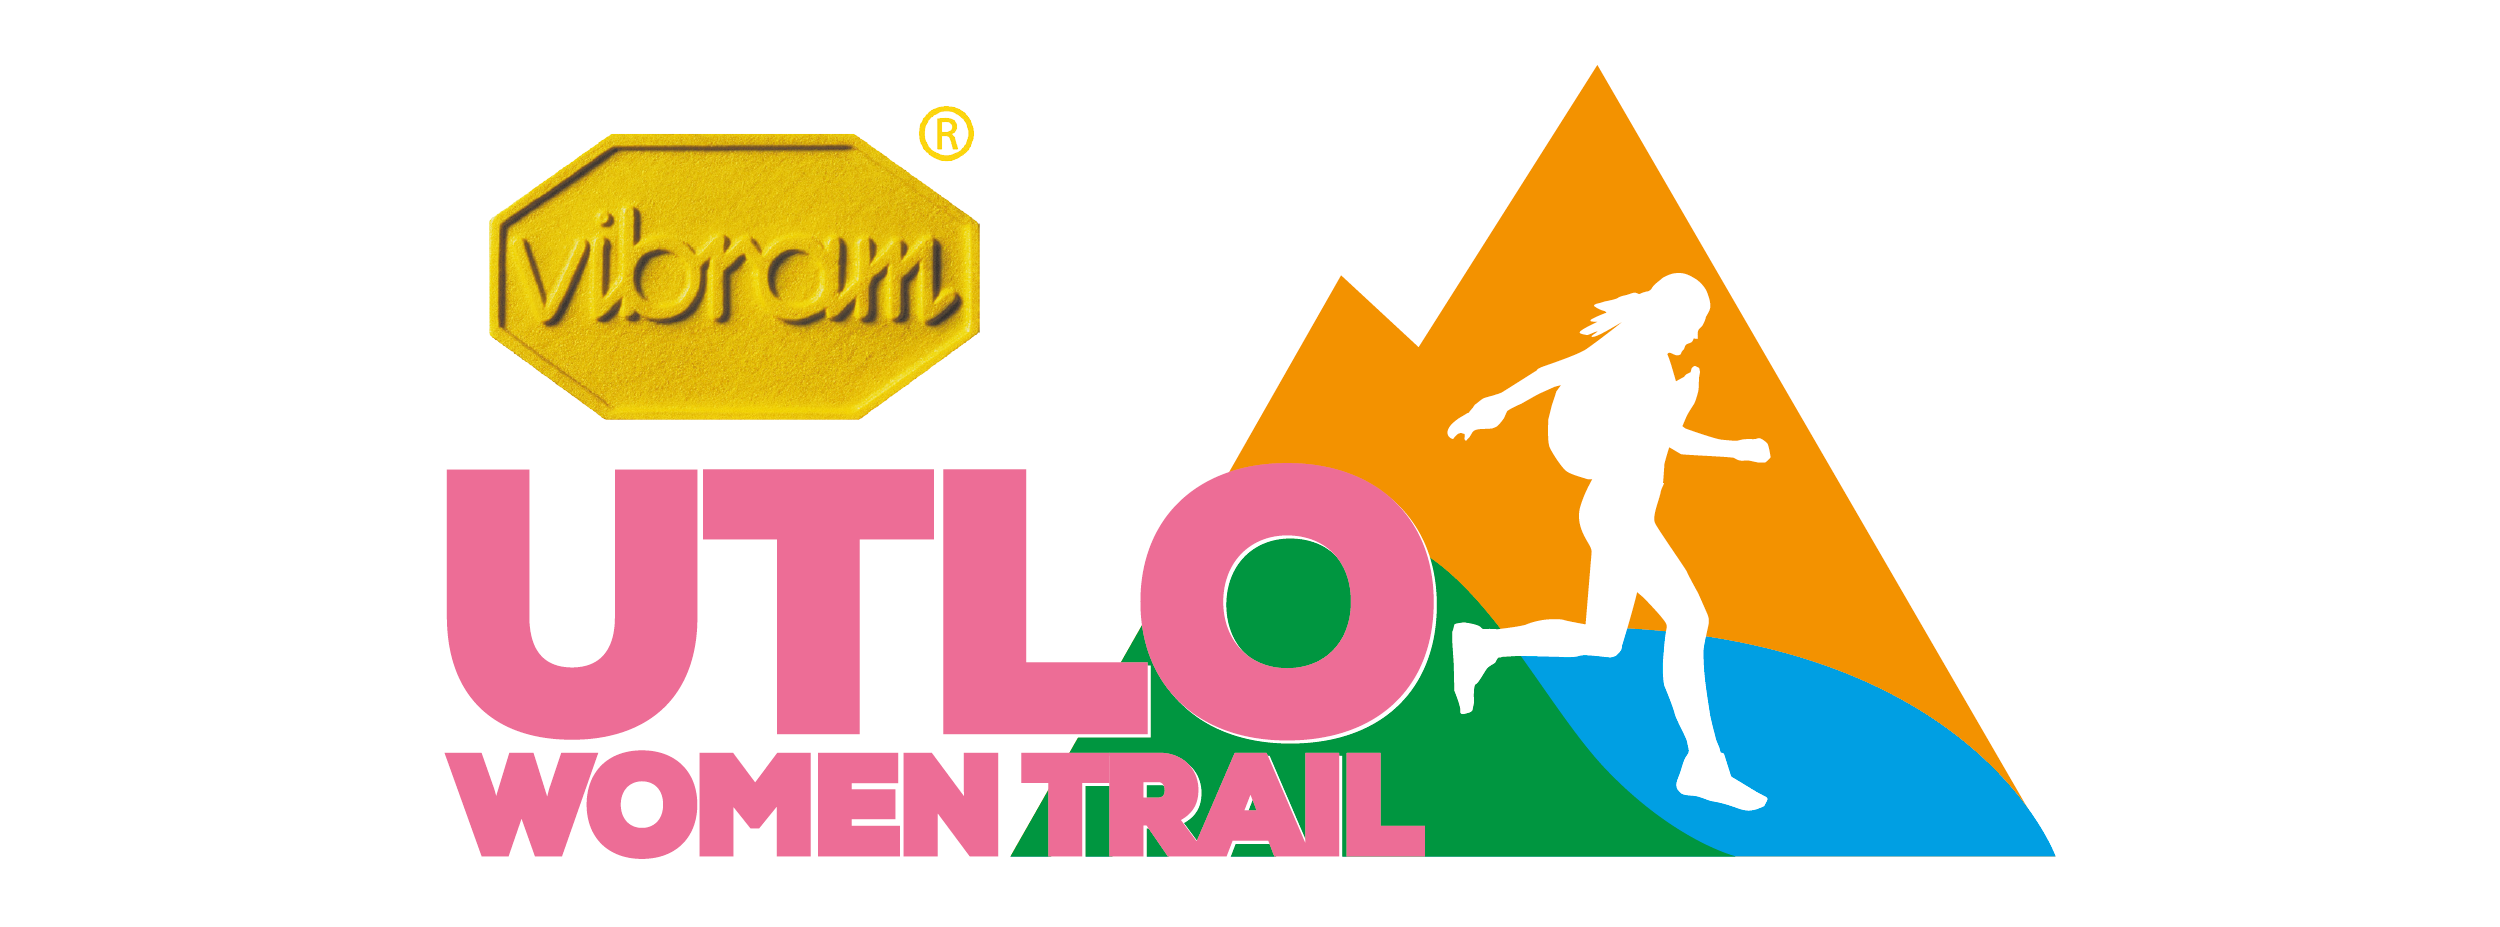 Vibram® – UTLO Women Trail